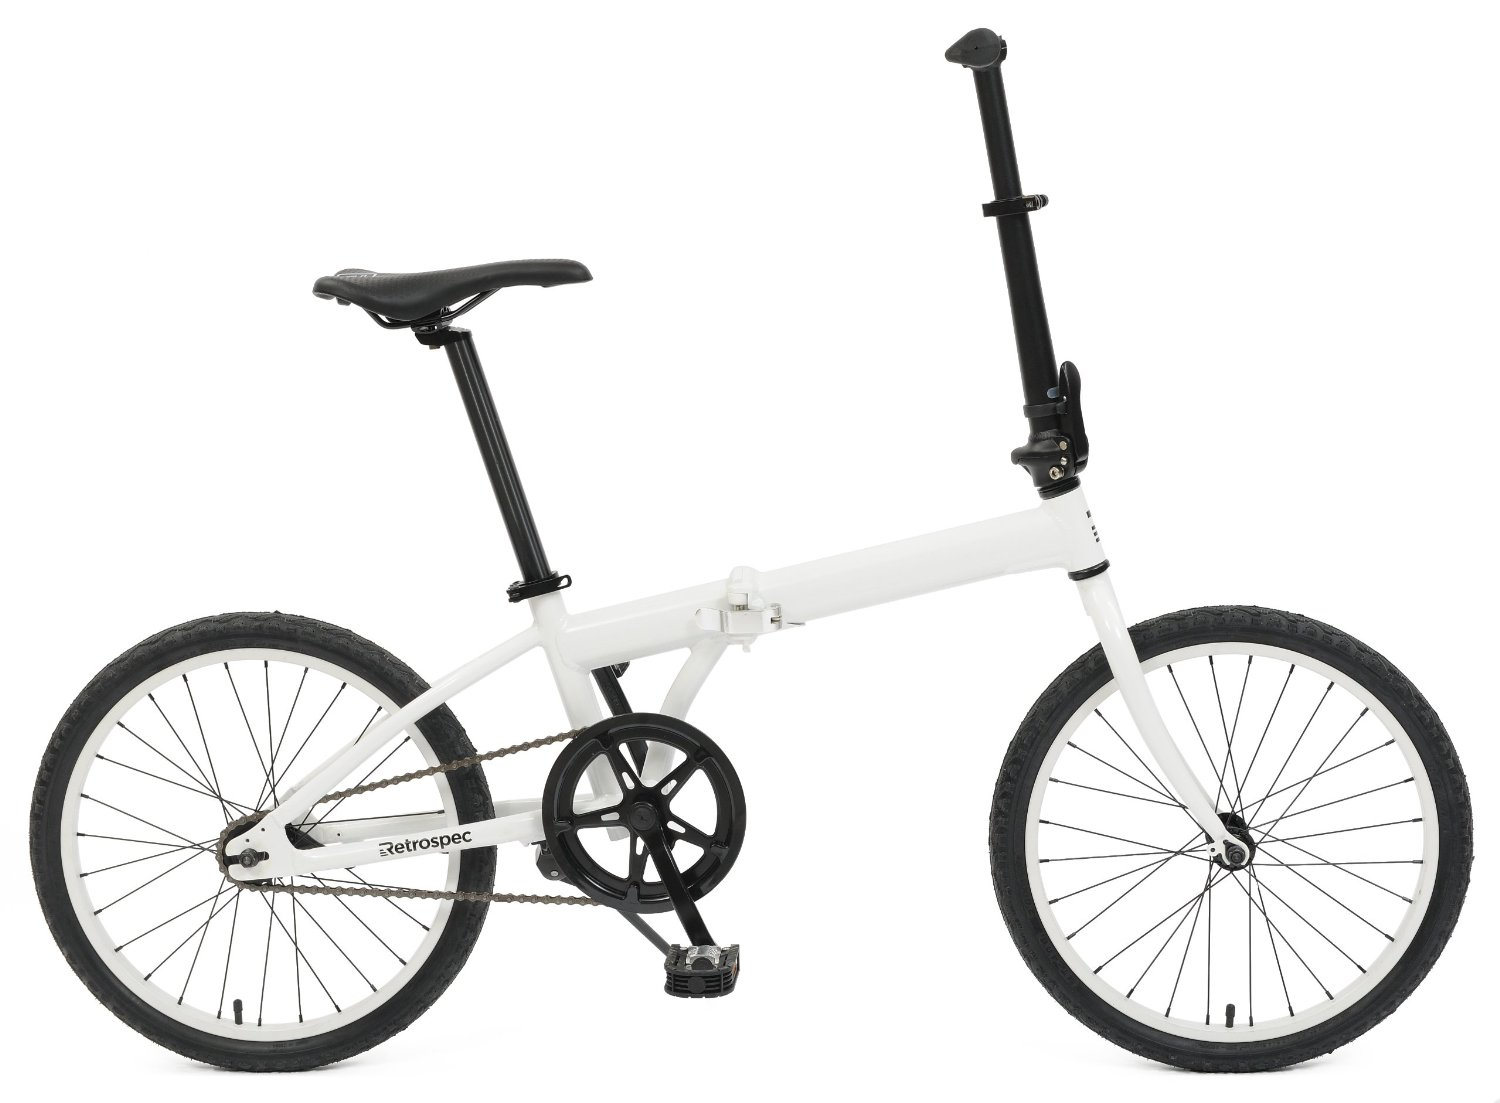 20-folding-bicycle - Bicycle Bike Review